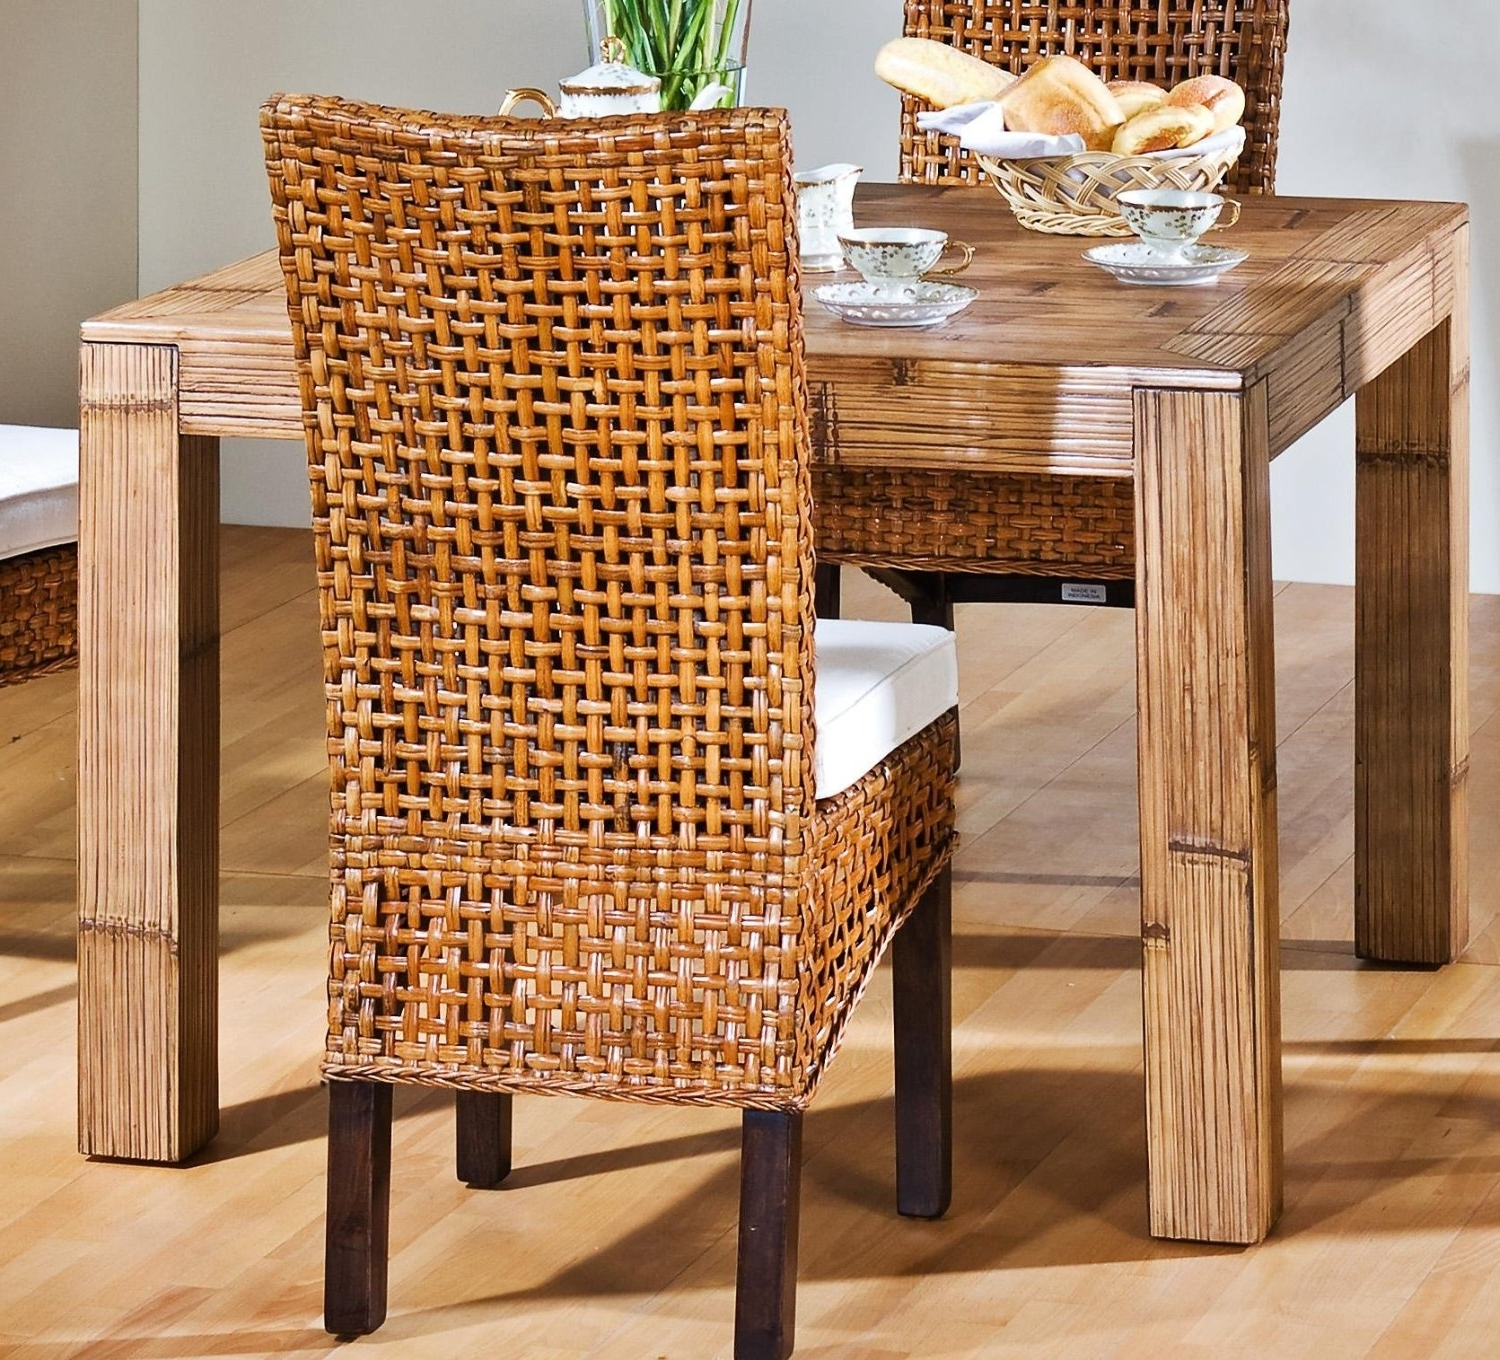 Bamboo Table And Chairs Furniture For Dining Room 857